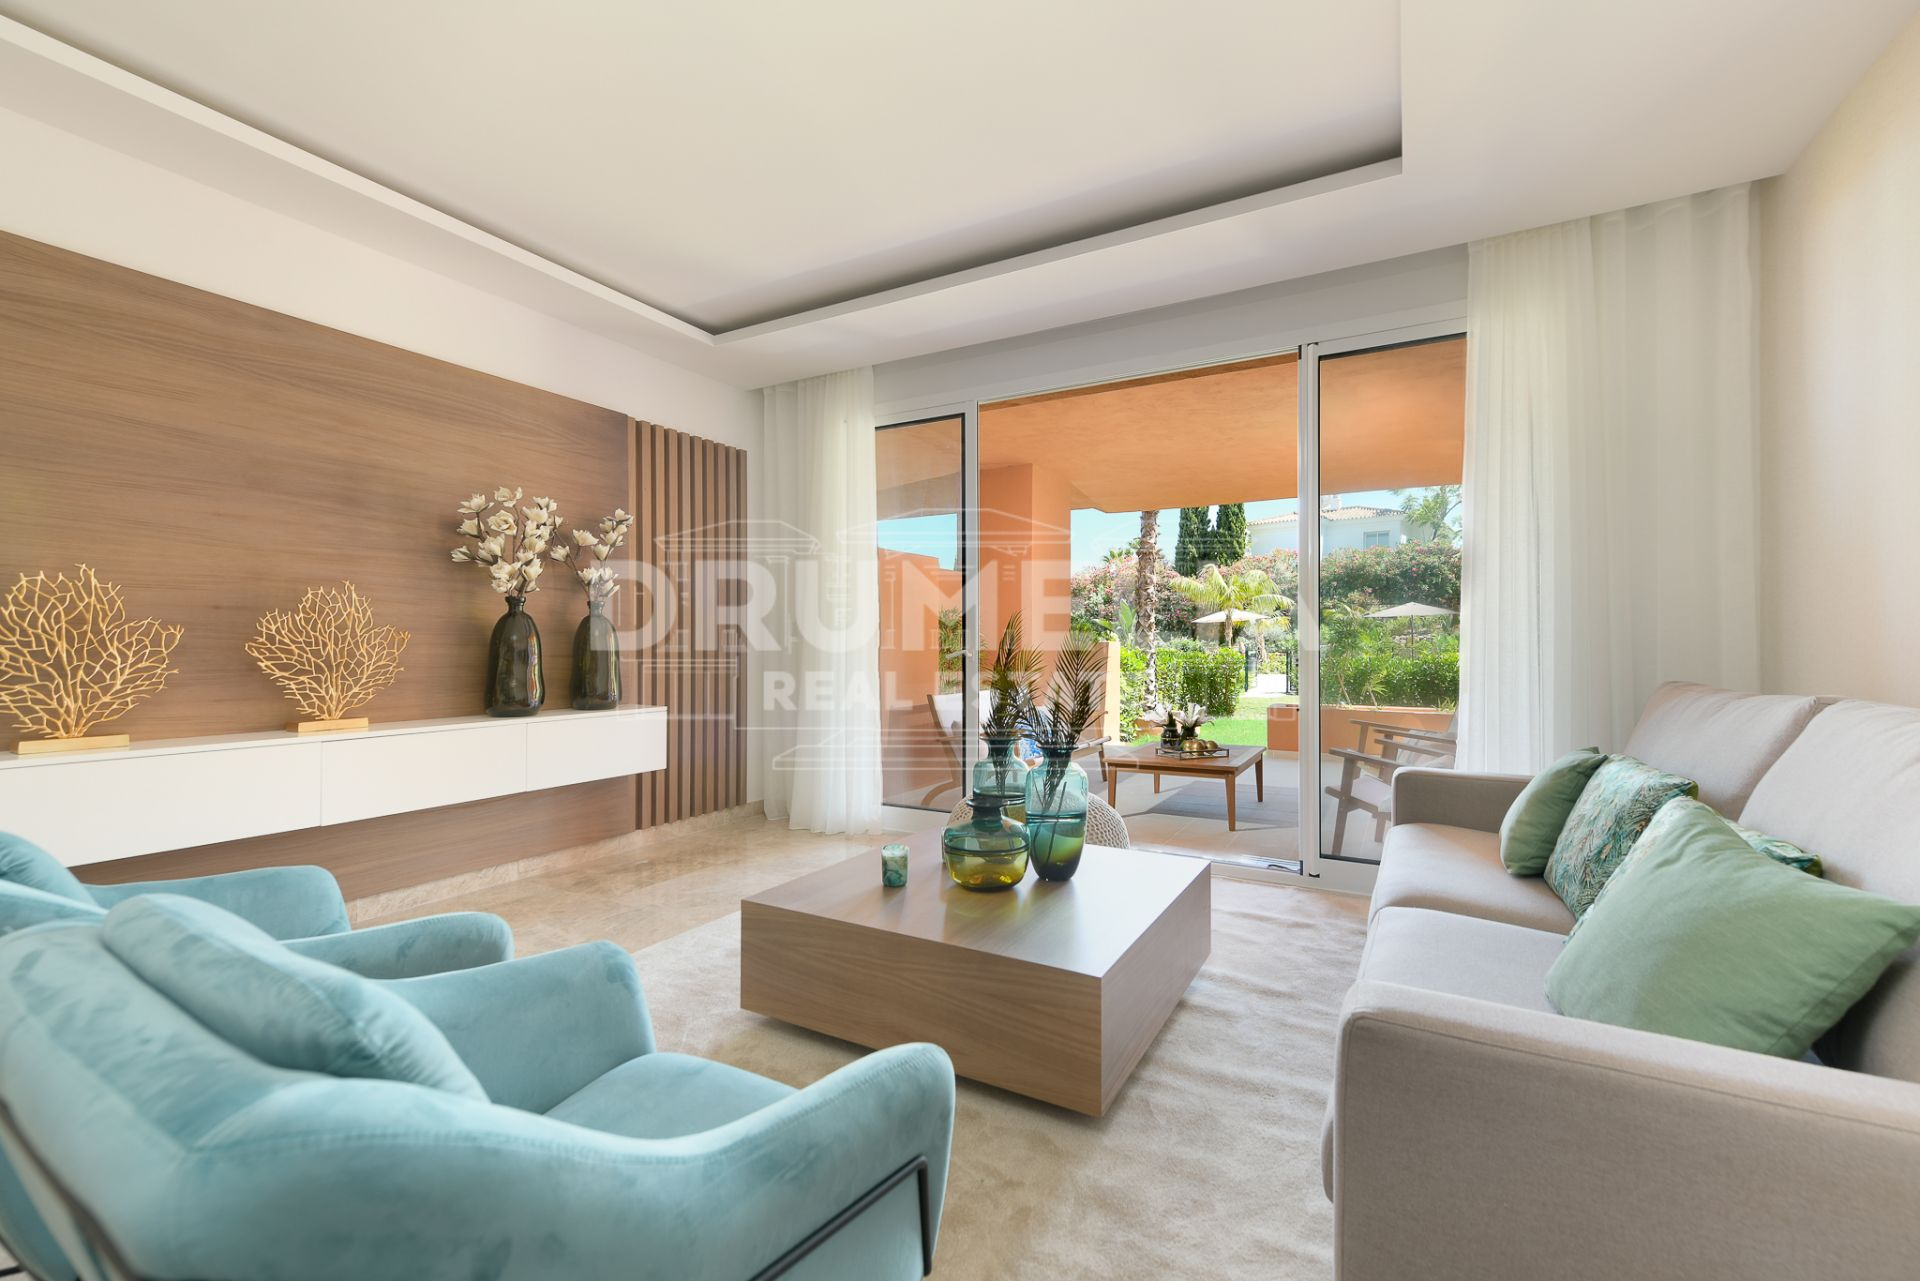 Nueva Andalucia, Sophisticated Brand-New Frontline Golf Modern Luxury Garden Level Apartment, Nueva Andalucía (Marbella).